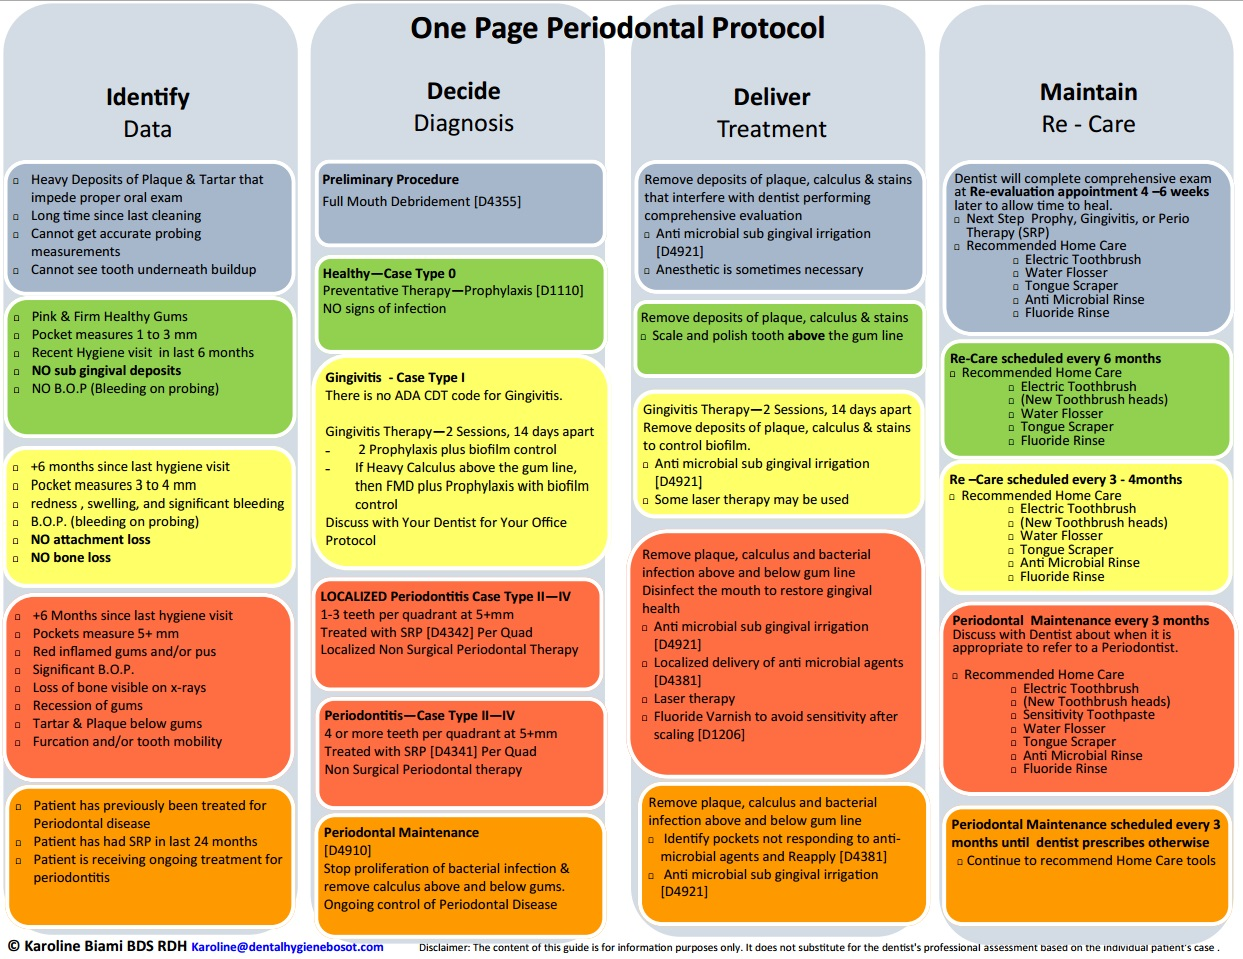 One Page Periodontal Protocol - medicalkidunya